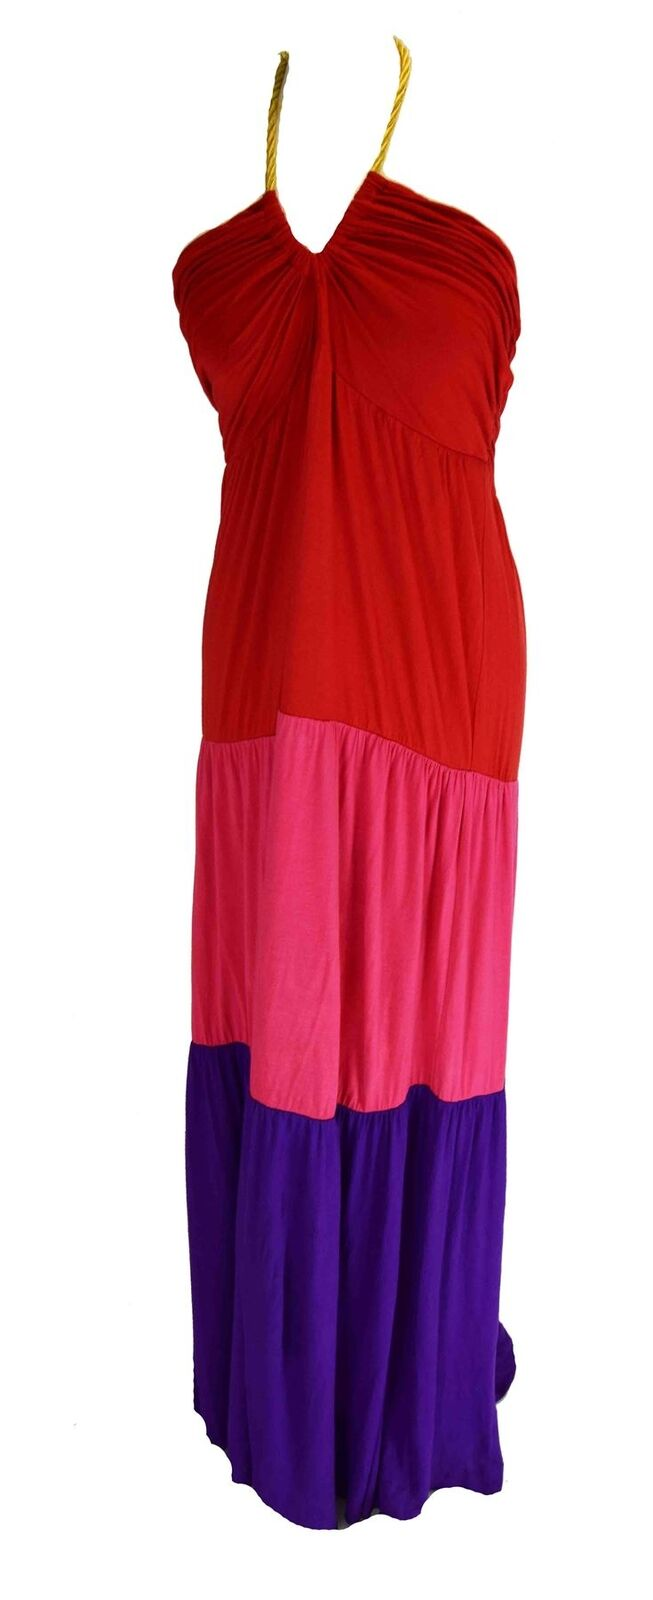 T BAGS LOS ANGELES  Multicoloured Long Tiered Dress, Medium M